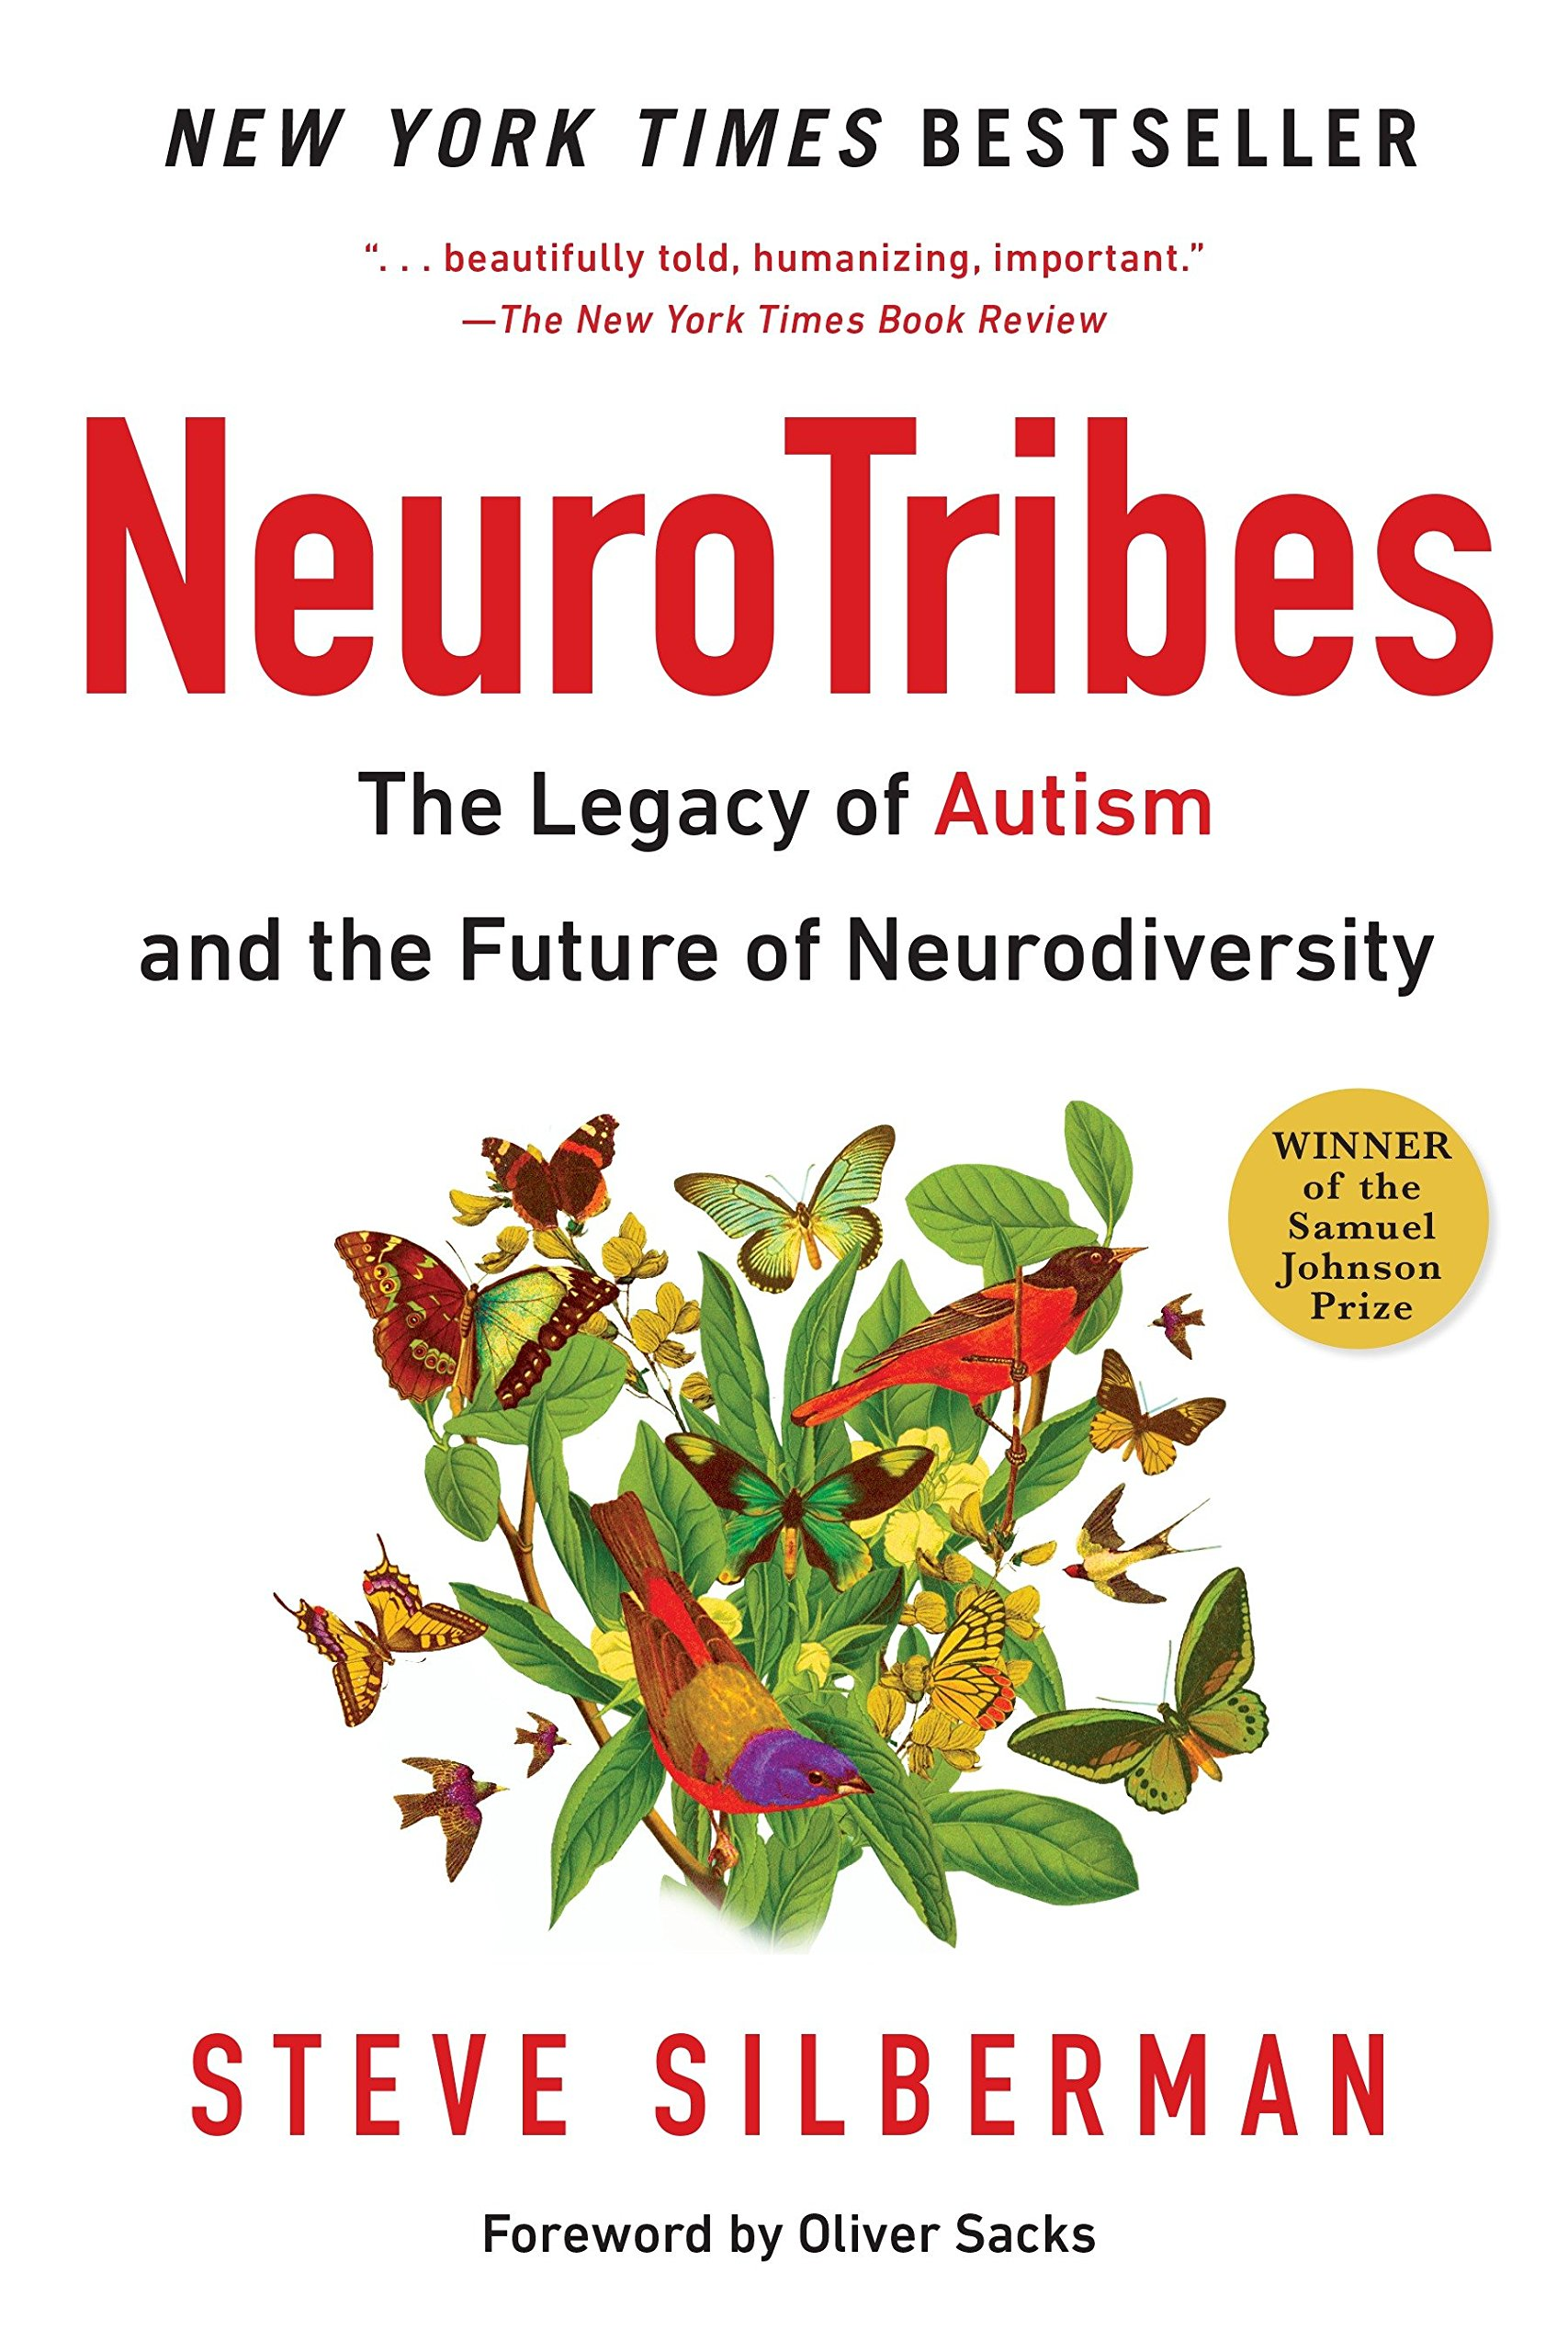 NeuroTribes: The Legacy ofAutism and the Future ofNeurodiversity